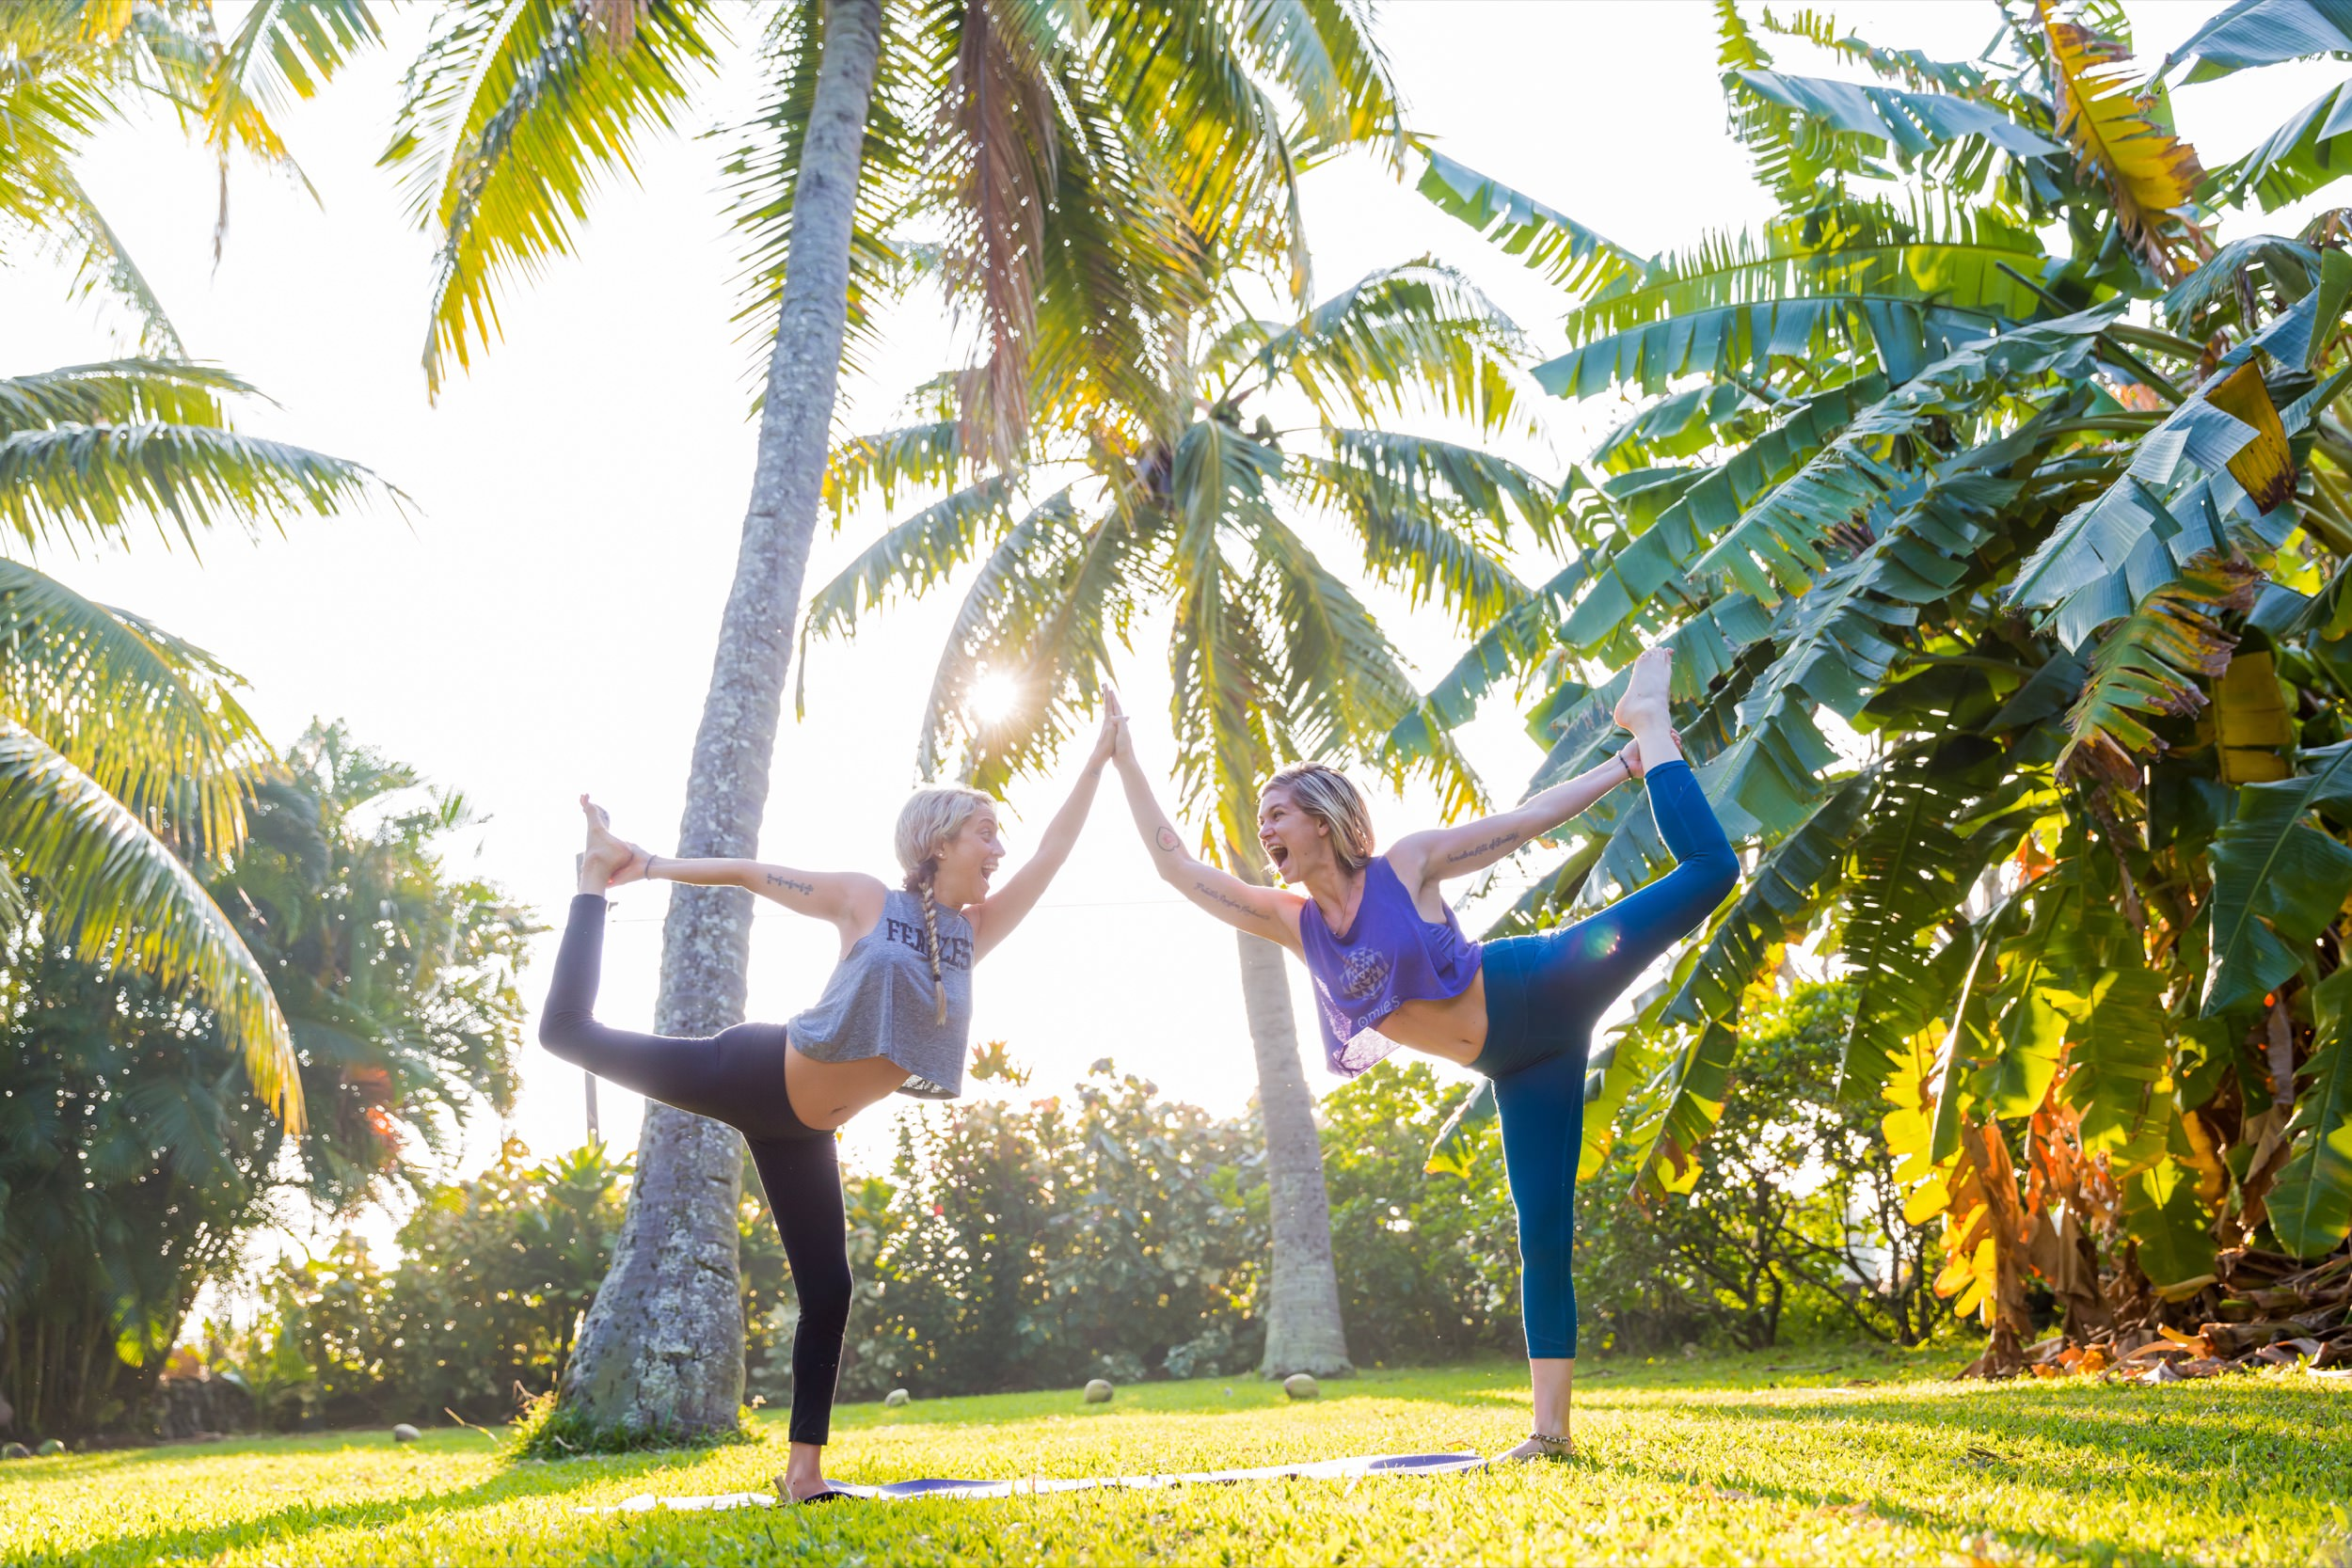 016_073_011015_Hana-Maui-Yoga-Retreat_Nicole-Goddard-Photography_NMG_7701